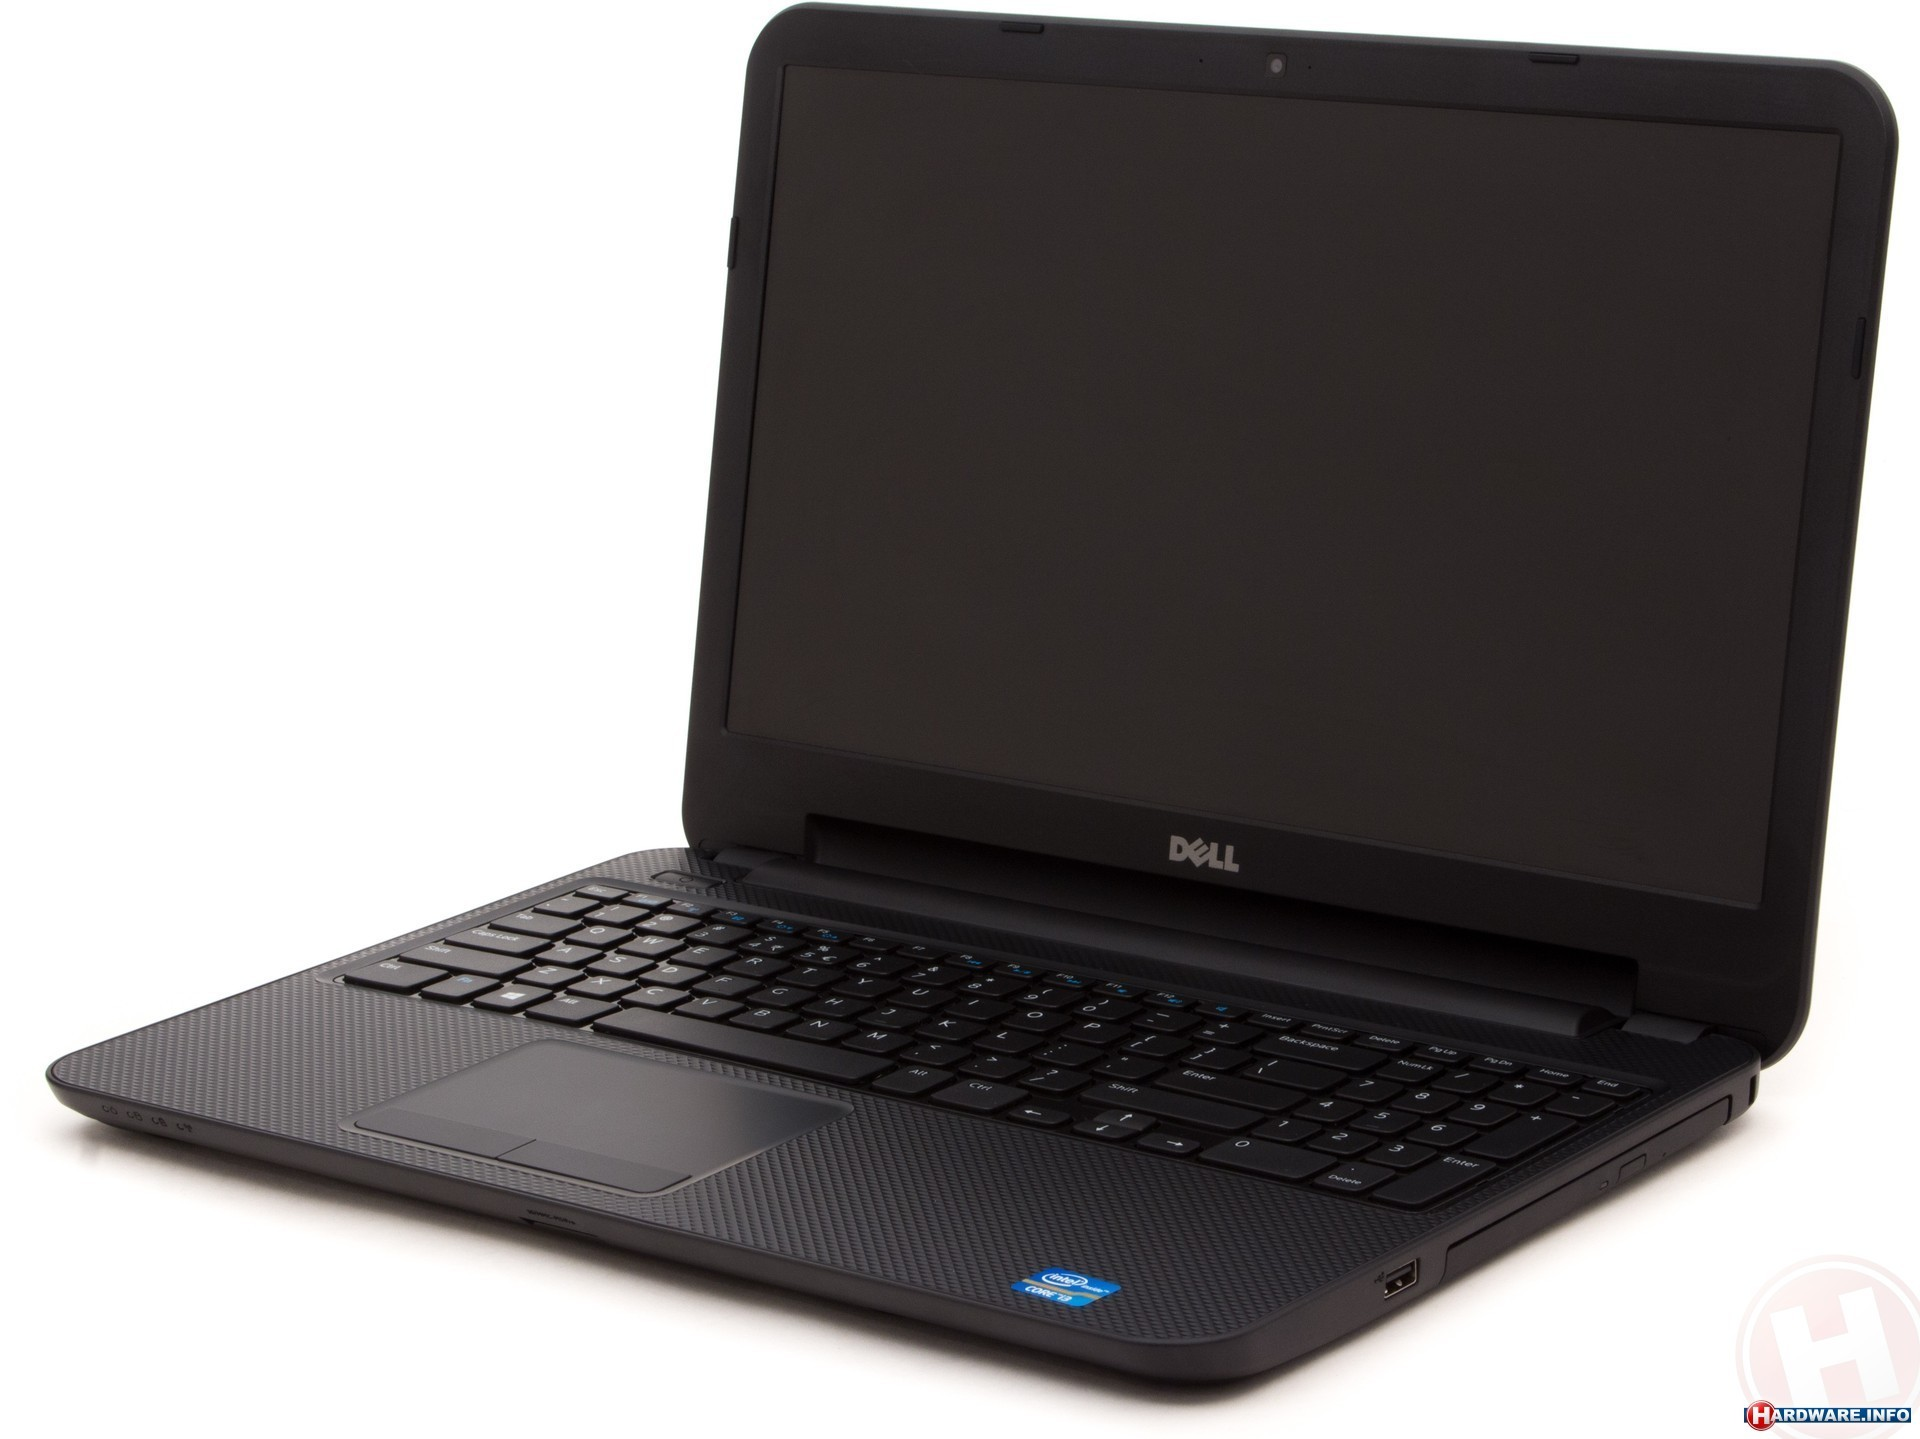 Dell Inspiron 15 3521 i3 3rd Gen 4GB, 500GB, Ubuntu,In India